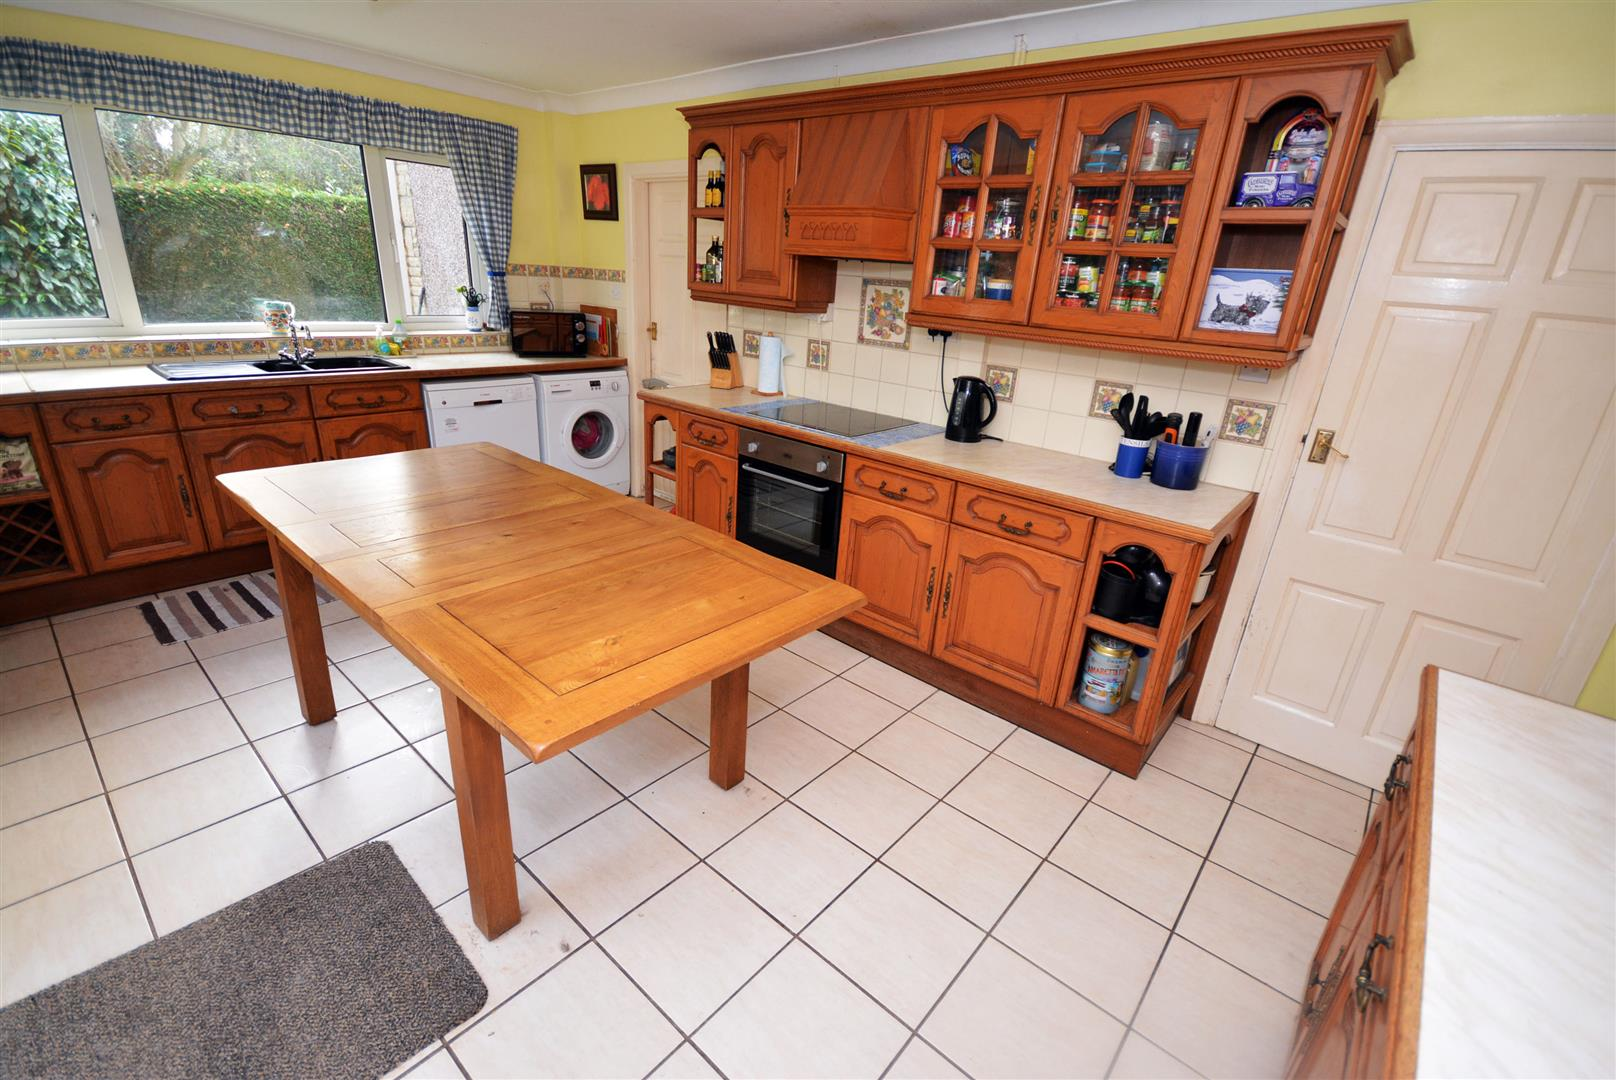 3 bed detached house for sale in Wellfield Road, Cardiff 0